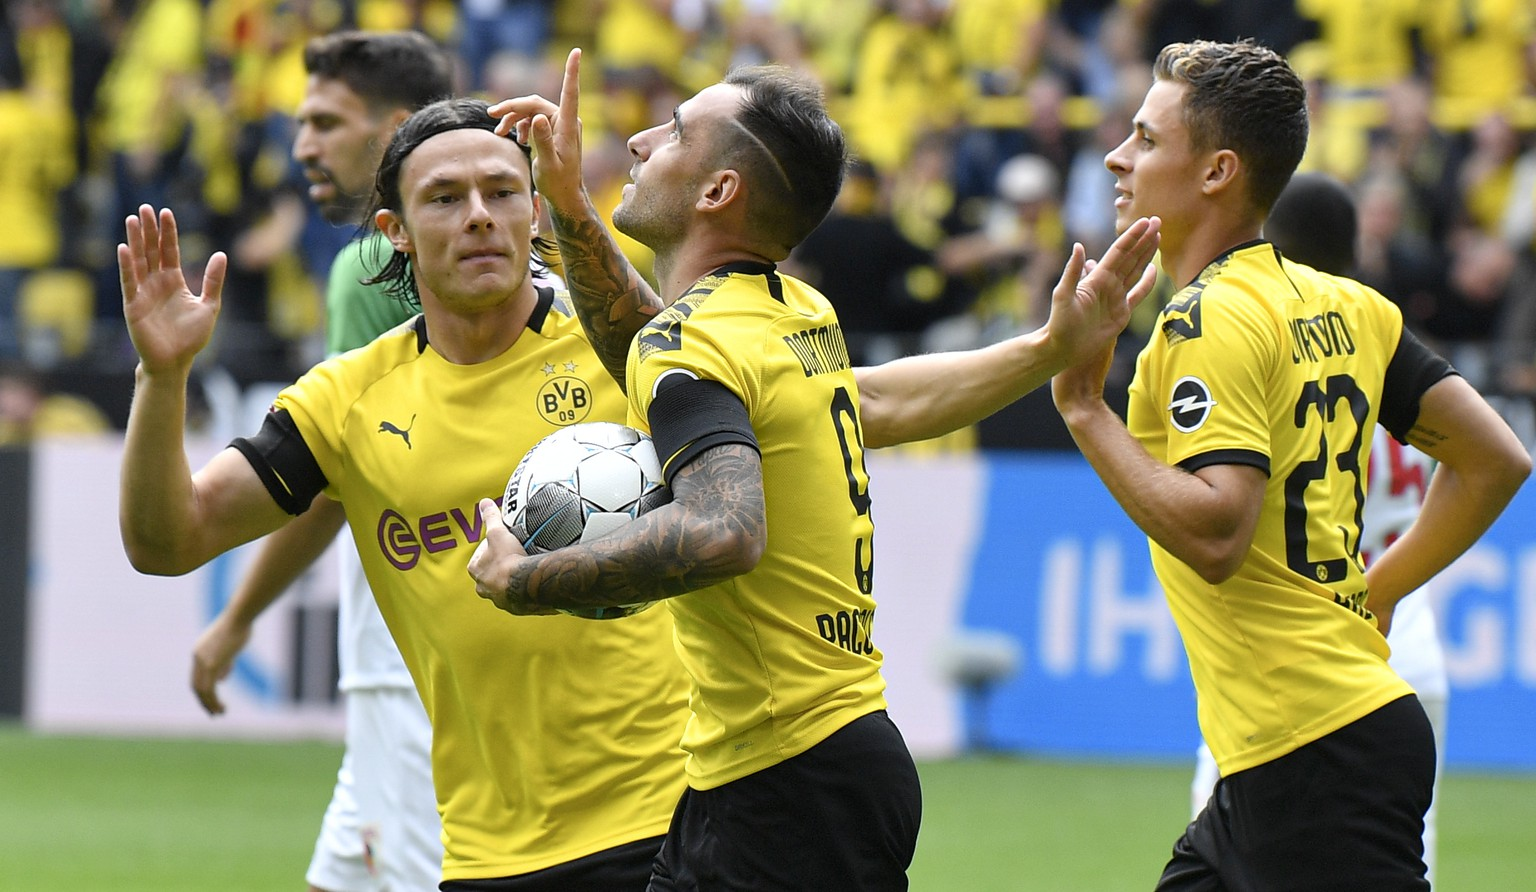 Dortmund's Paco Alcacer, center, celebrates after scoring his side's first goal during the German Bundesliga soccer match between Borussia Dortmund and FC Augsburg at the Signal Iduna Park stadium in Dortmund, Germany, Saturday, Aug. 17, 2019. (AP Photo/Martin Meissner)